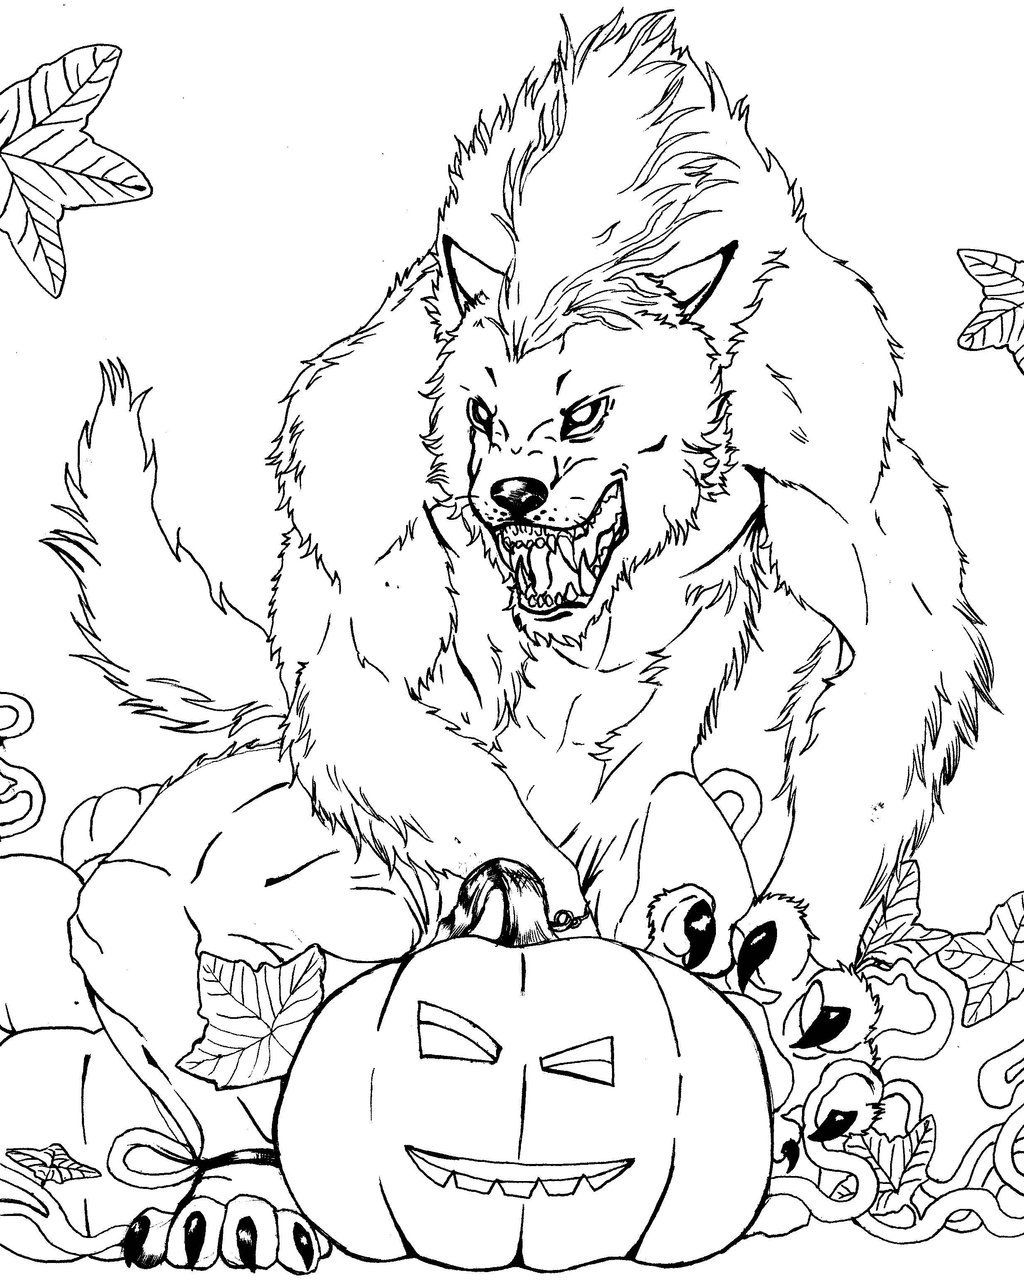 werewolf coloring page free werewolf coloring page lineart classic movie page werewolf coloring